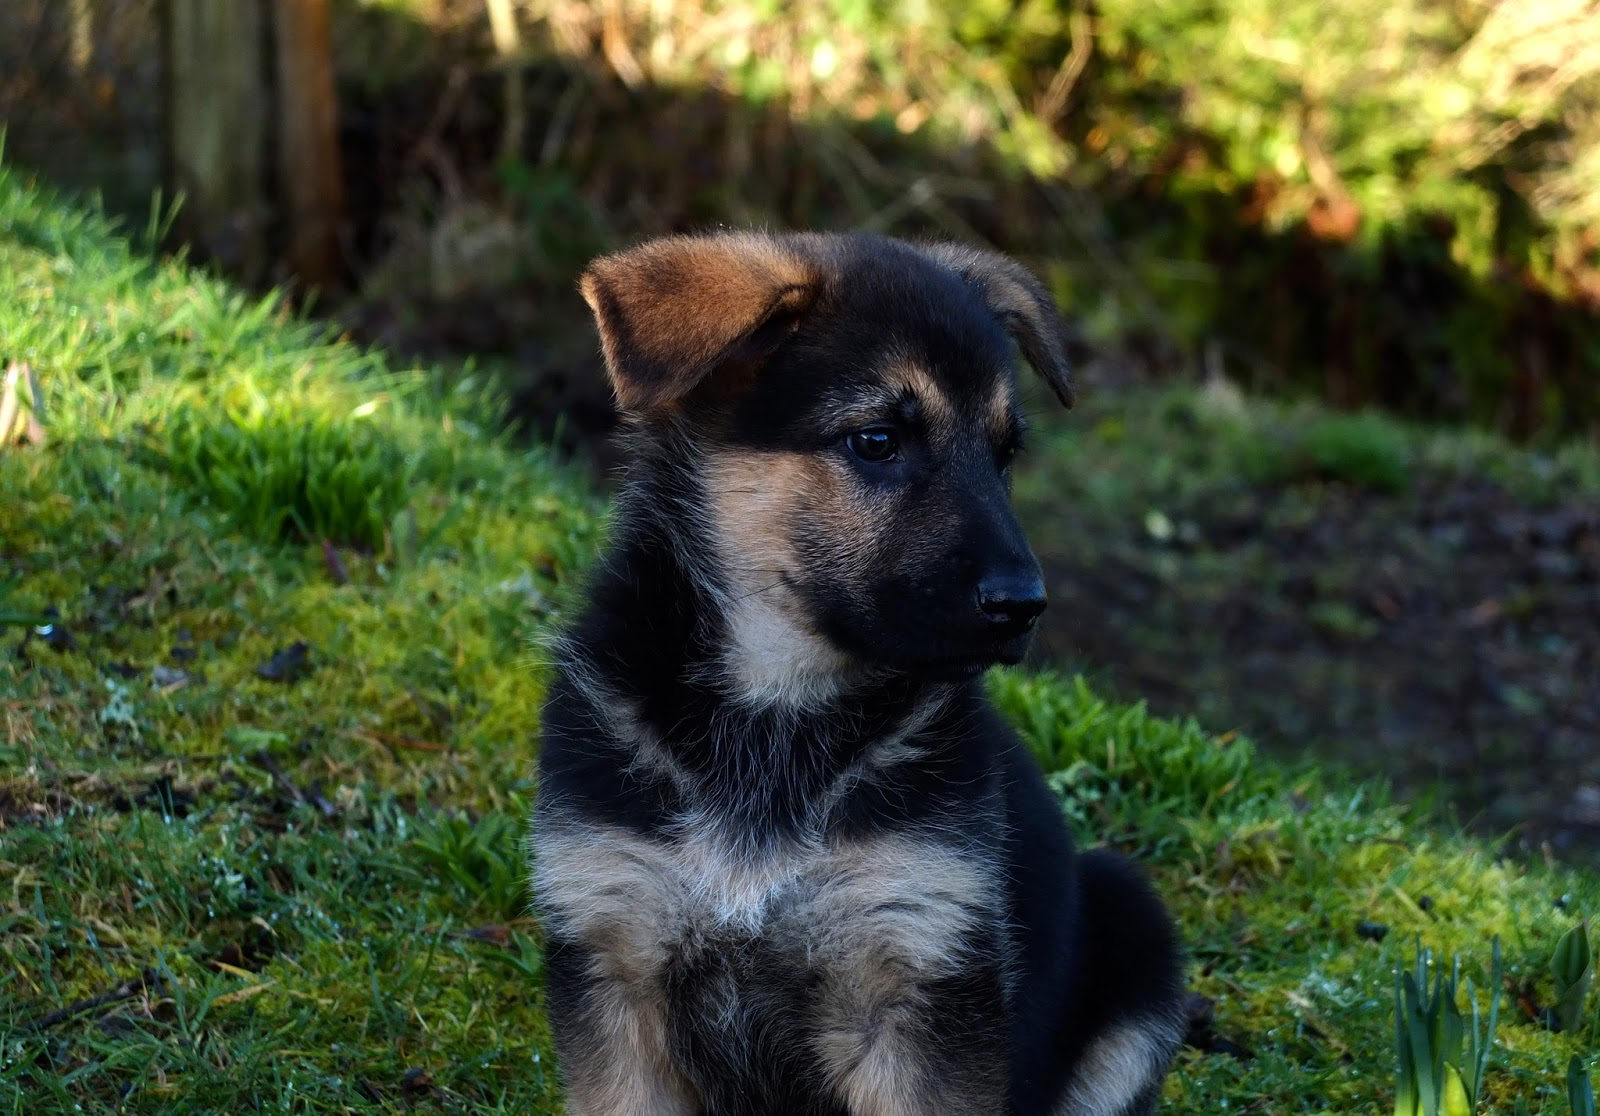 German Shepherd puppy sitting in the grass.